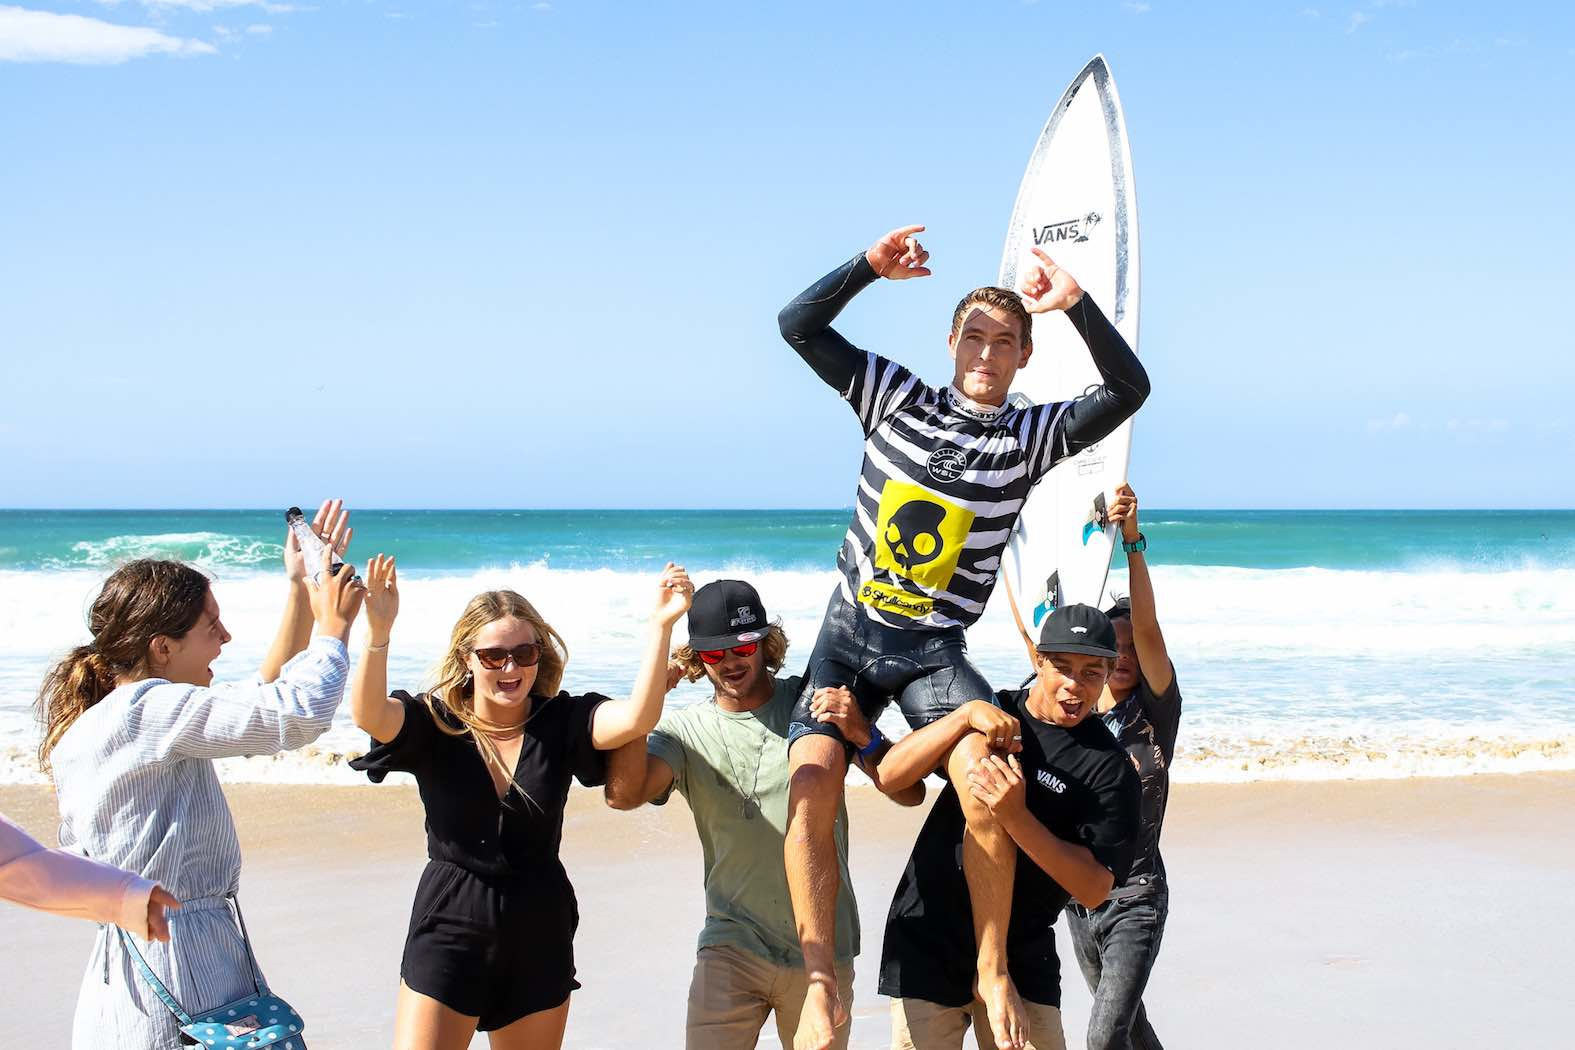 David van Zyl celebrating his victory at the Volkswagen Nelson Mandela Bay Surf Pro